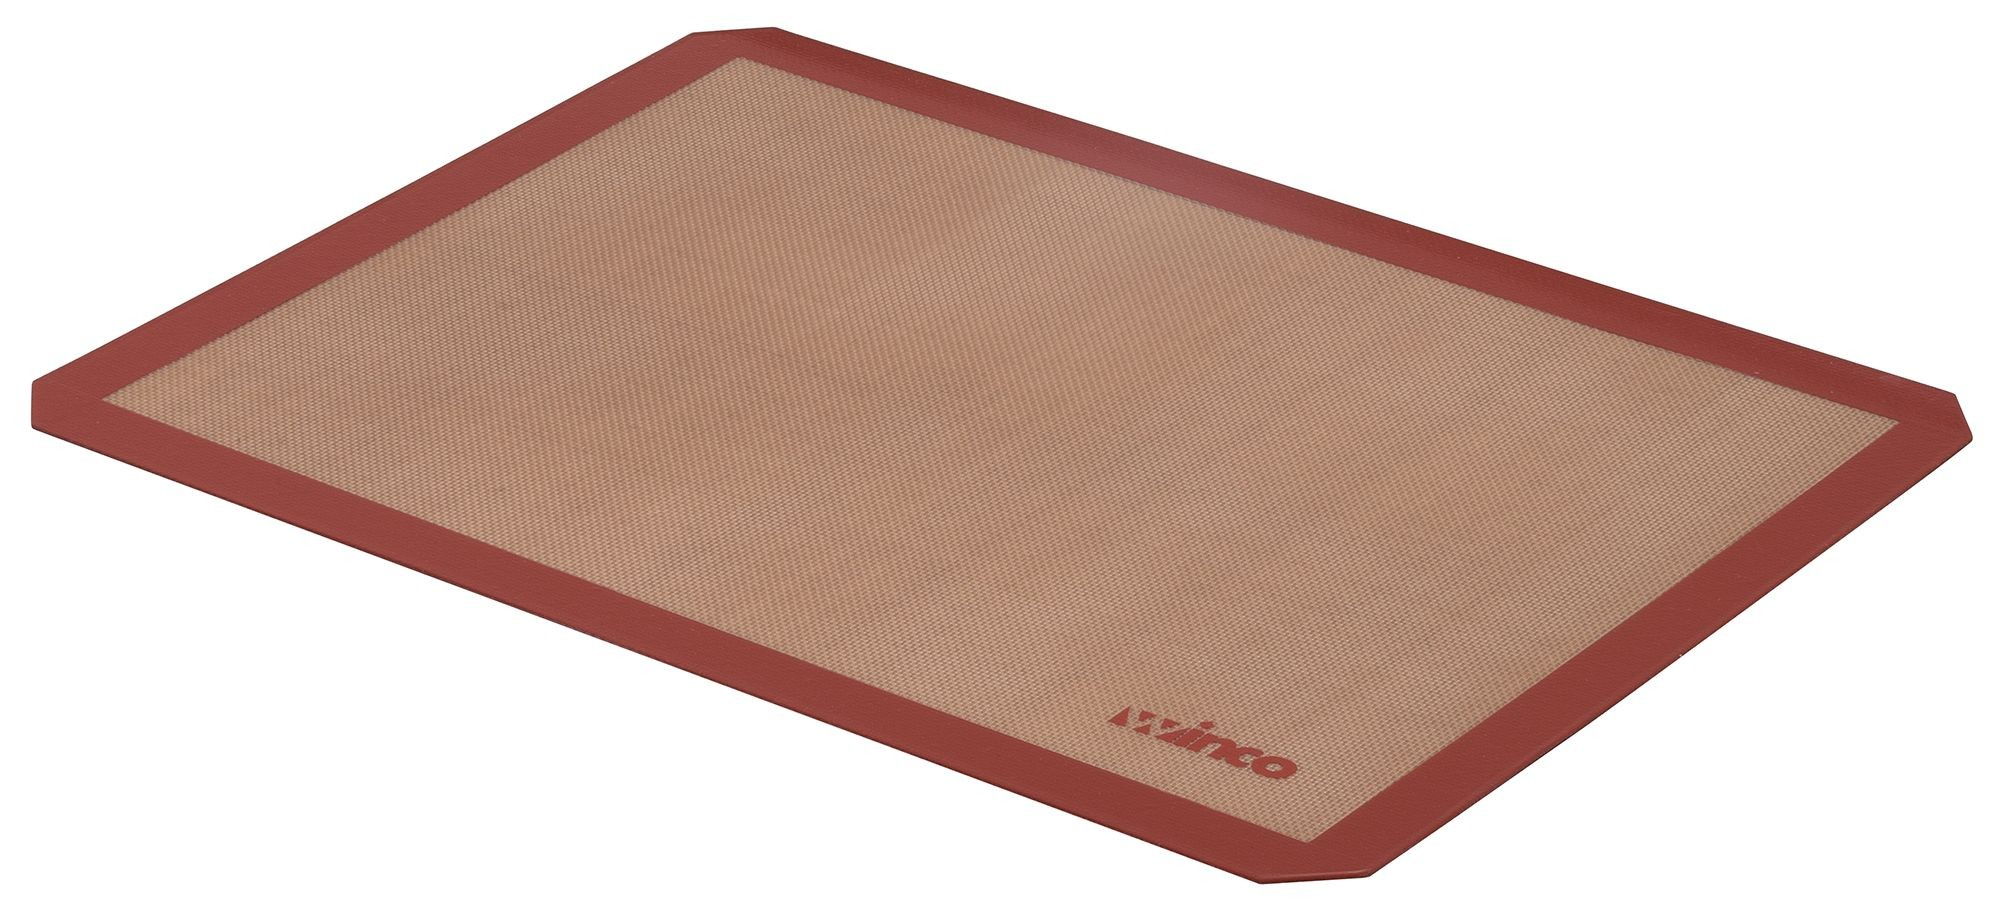 Silicone Baking Mats Fits Full-size Sheet Pan 16 x 24